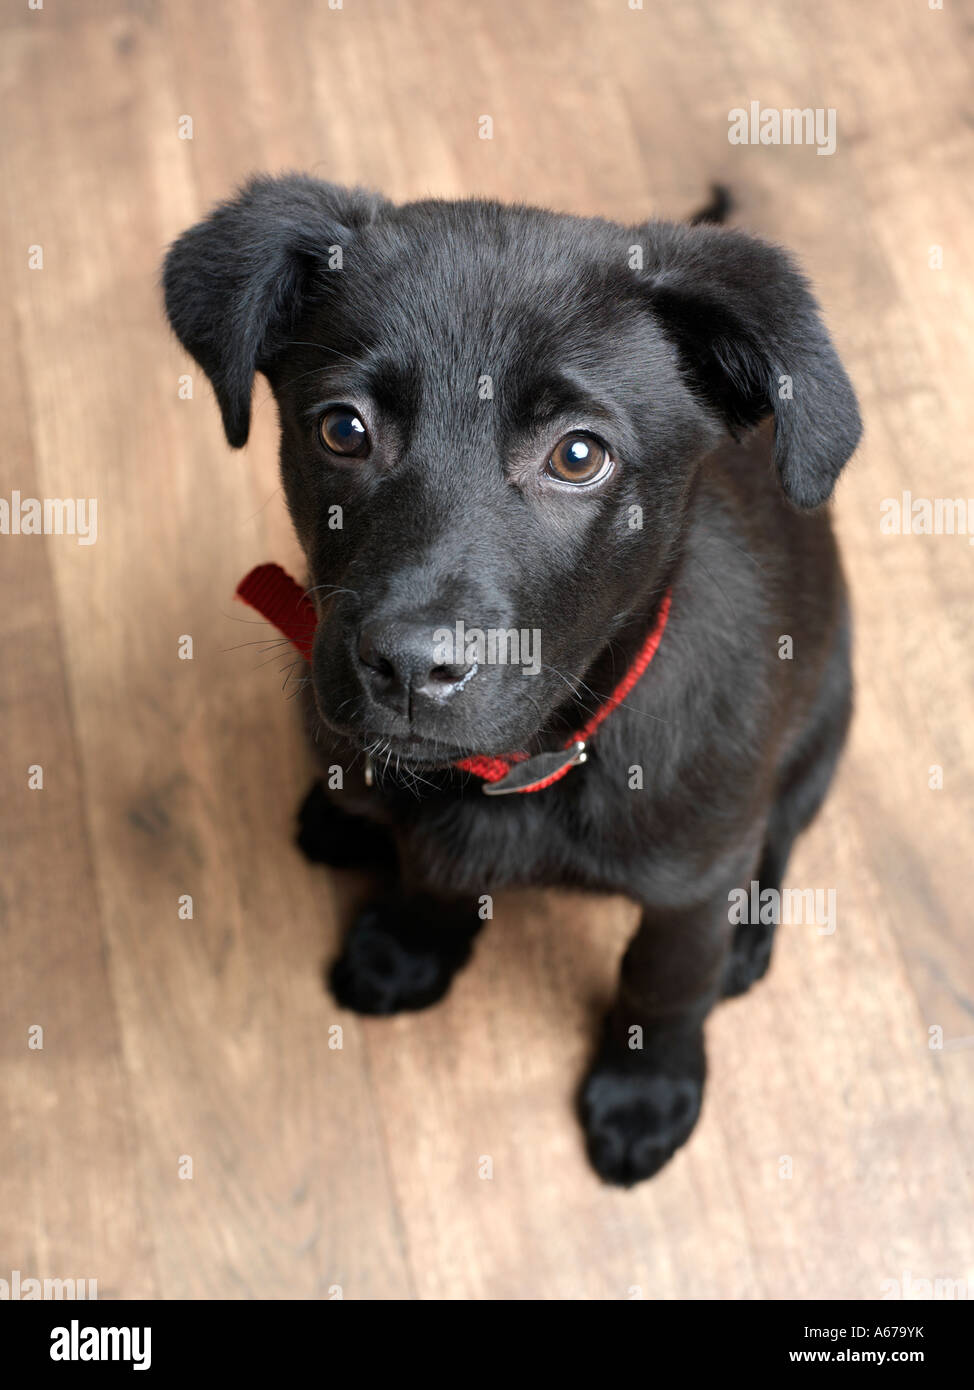 puppy waiting - Stock Image